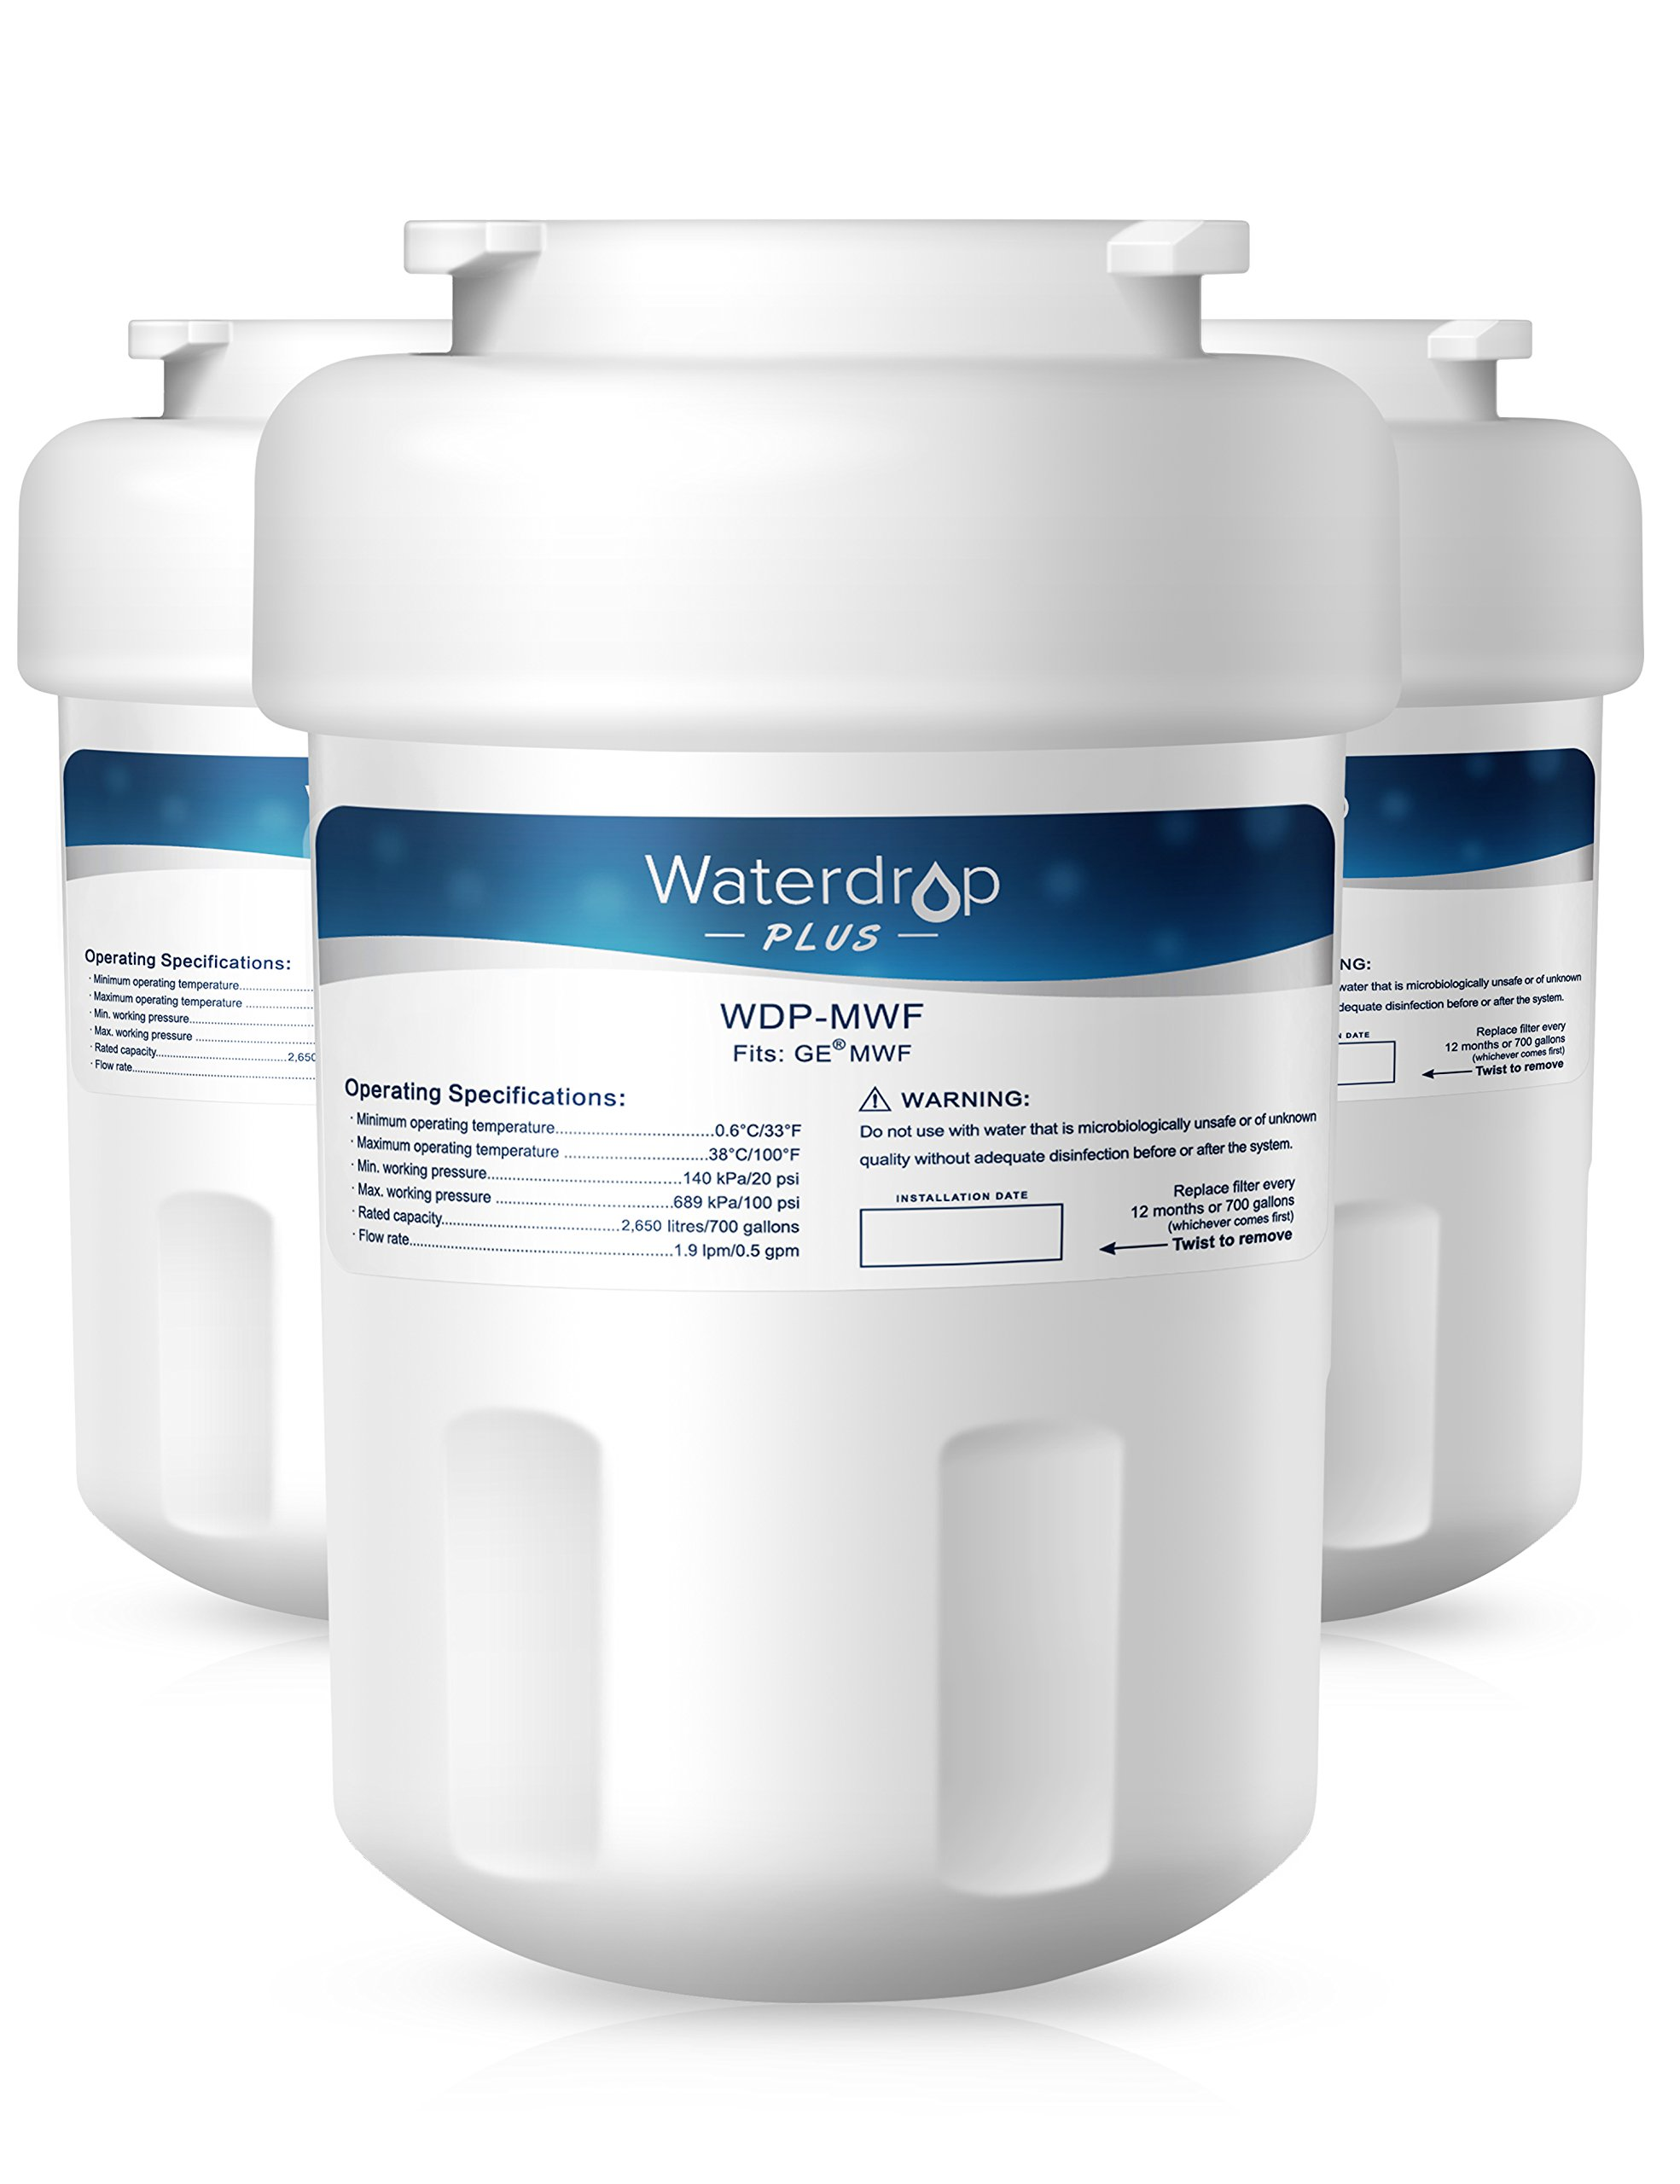 Waterdrop Plus MWF Double Lifetime Replacement Refrigerator Water Filter, Compatible with GE MWF, MWFP, MWFA, GWF, GWFA, SmartWater, Kenmore 9991, 46-9991, 469991 (3 Pack)